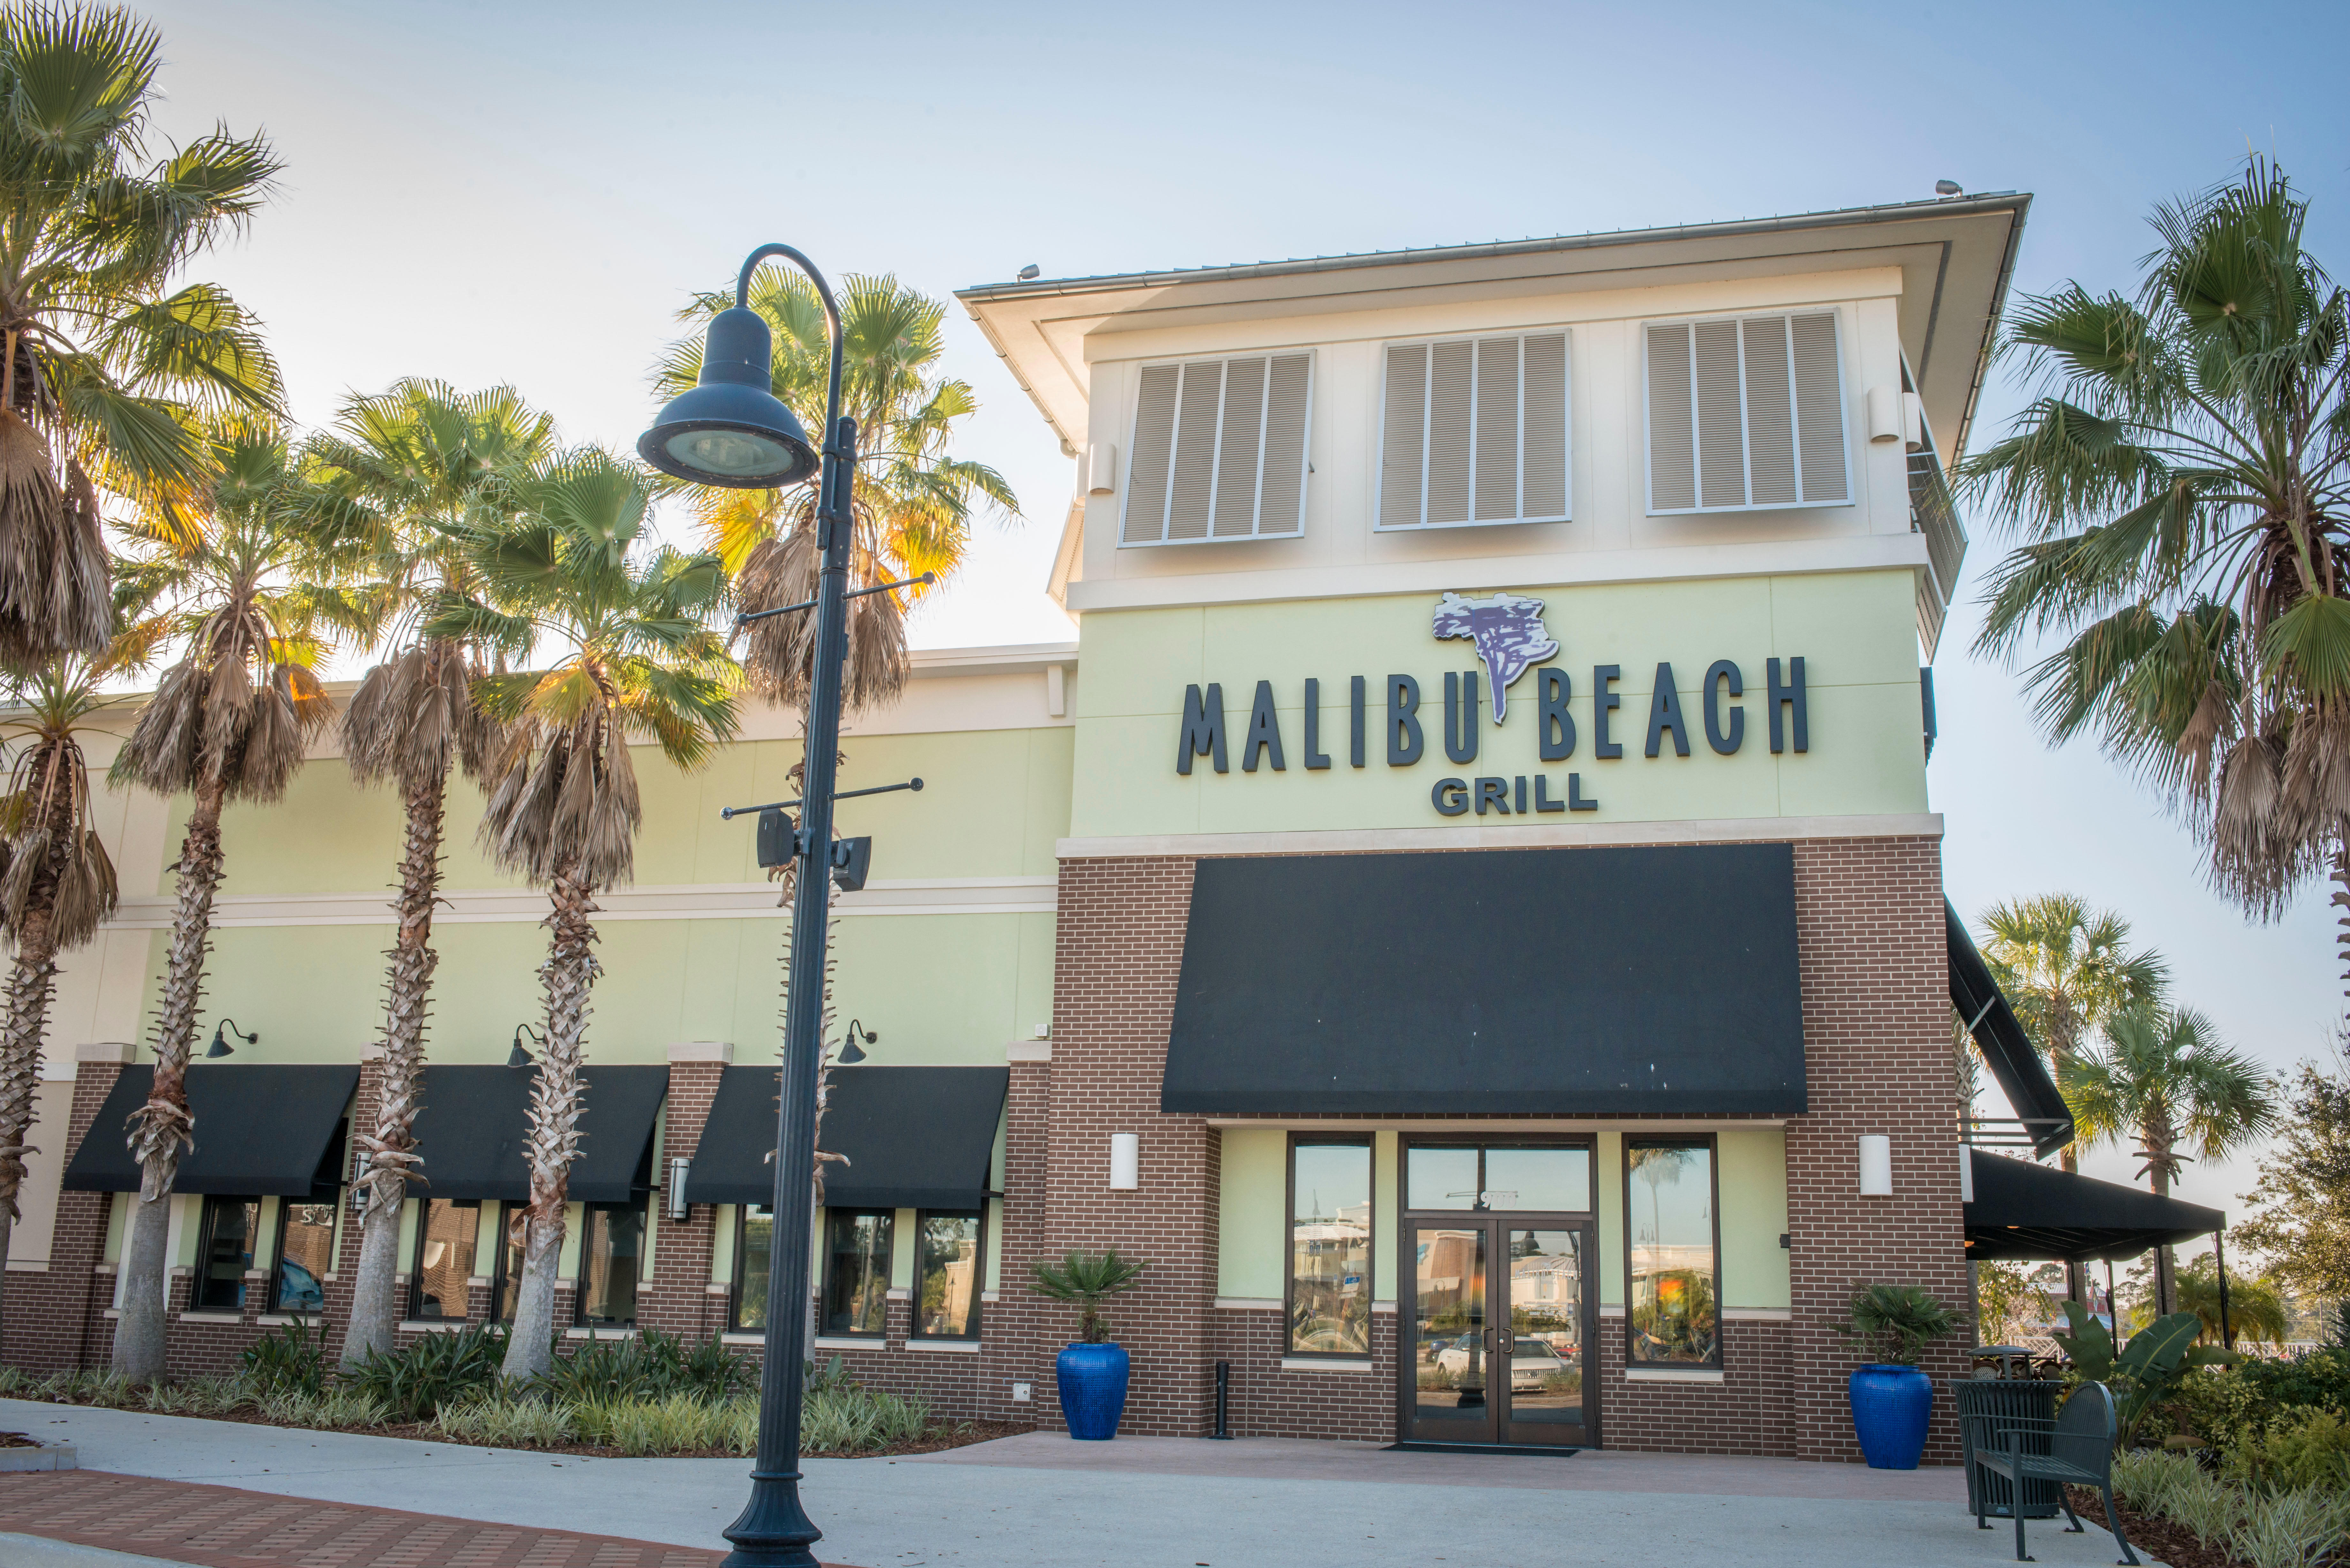 Malibu beach grill port orange fl company profile for Porte orange